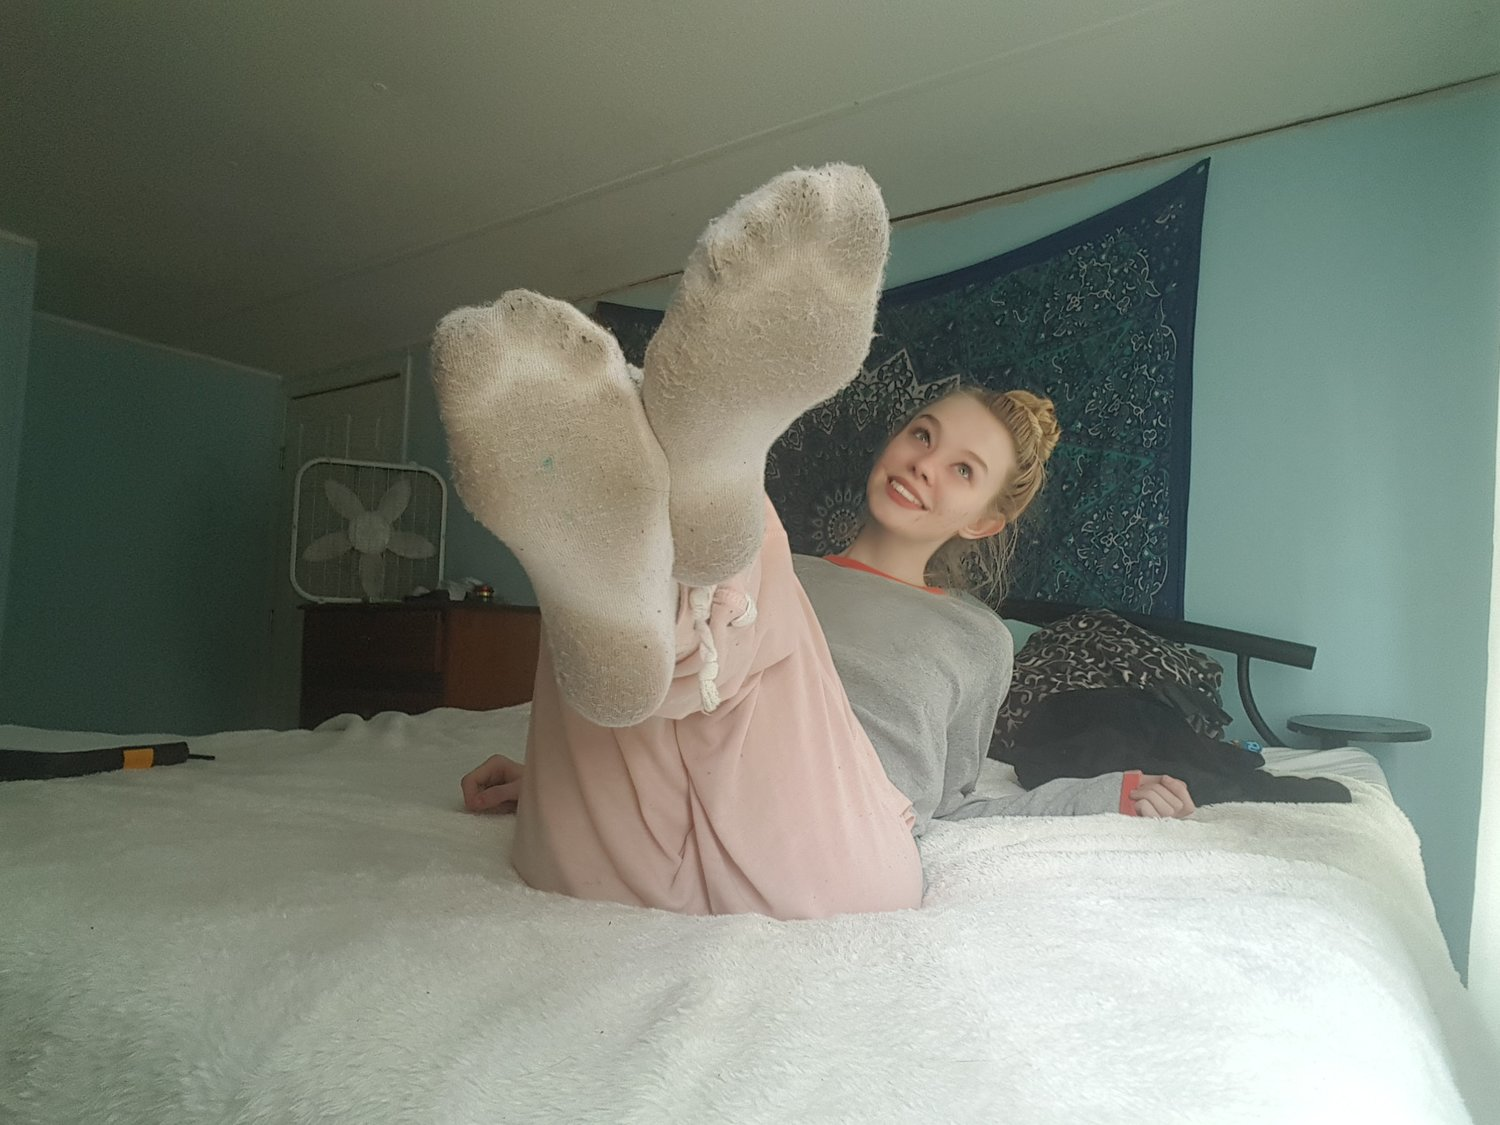 Mainstream Foot Fetish Scenes